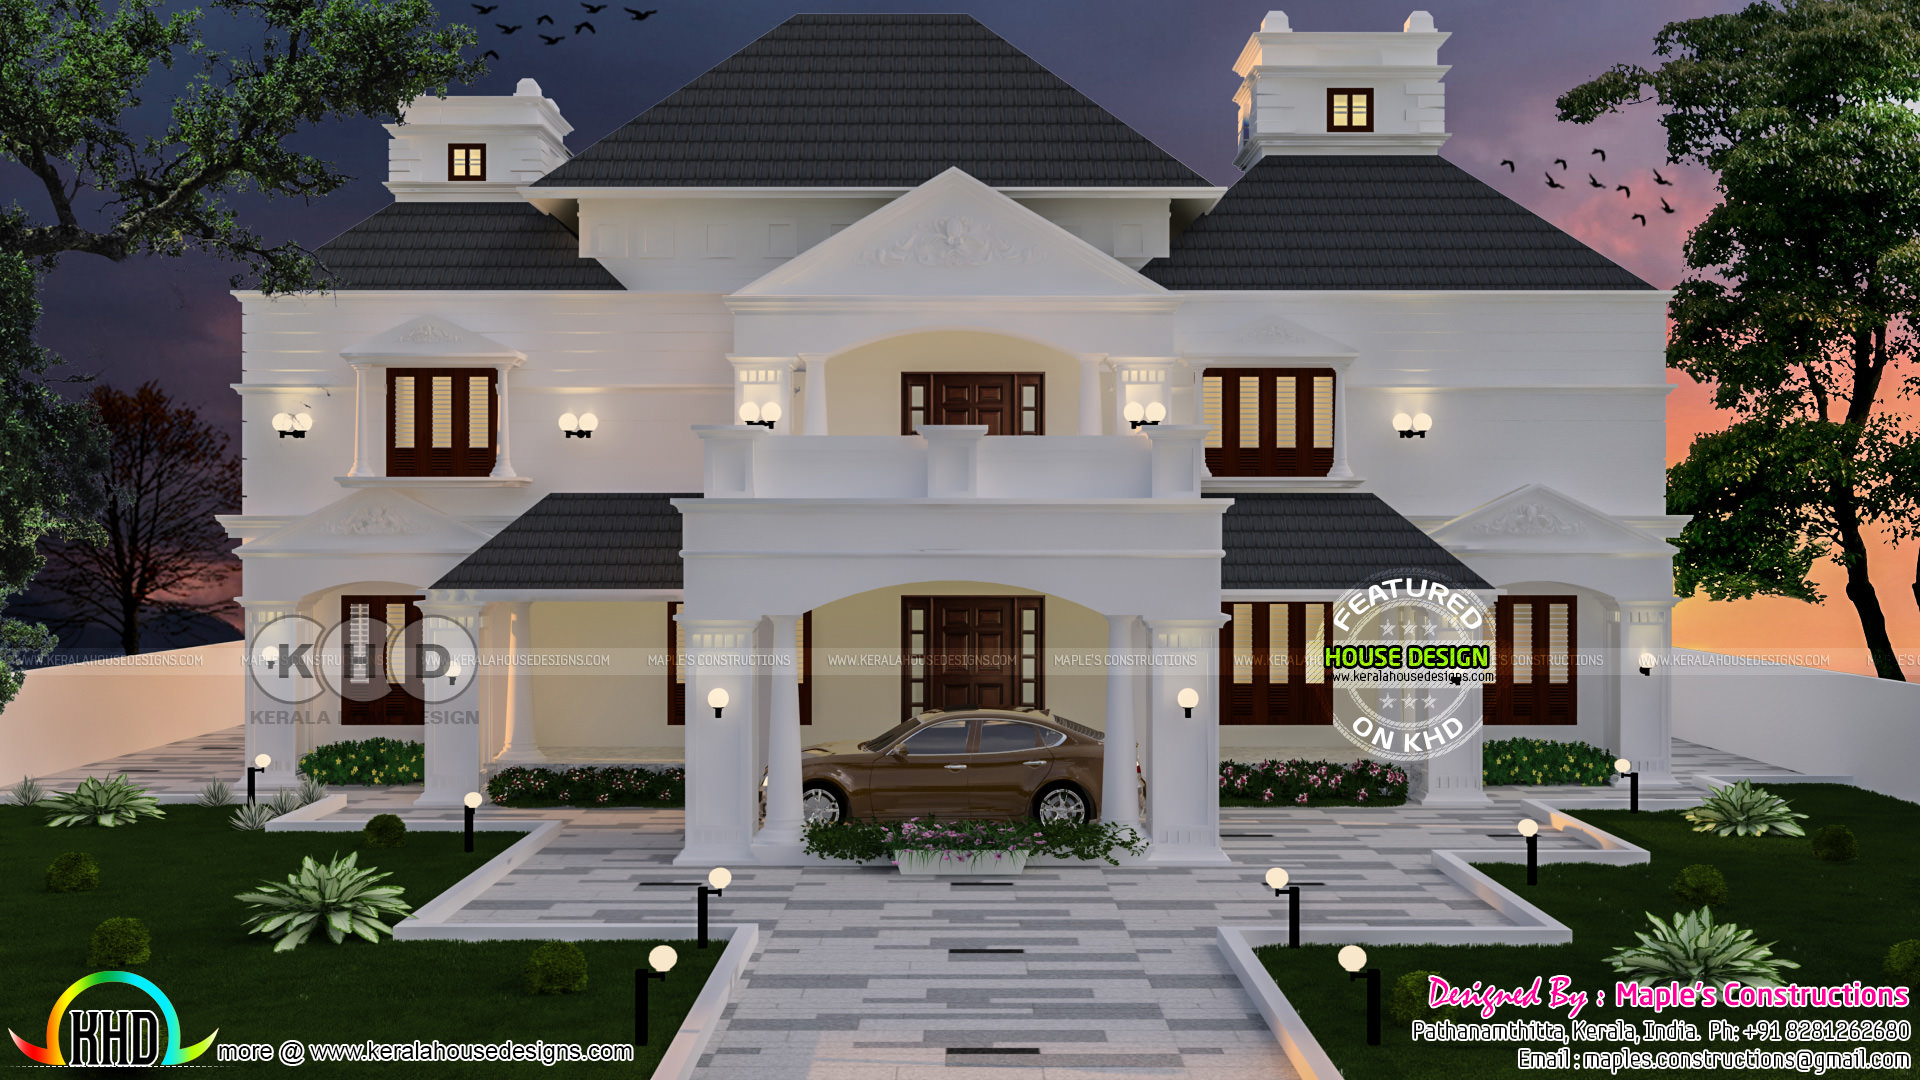 6 Bedroom Colonial Model House Plan 343 Sq M Kerala Home Design And Floor Plans 8000 Houses